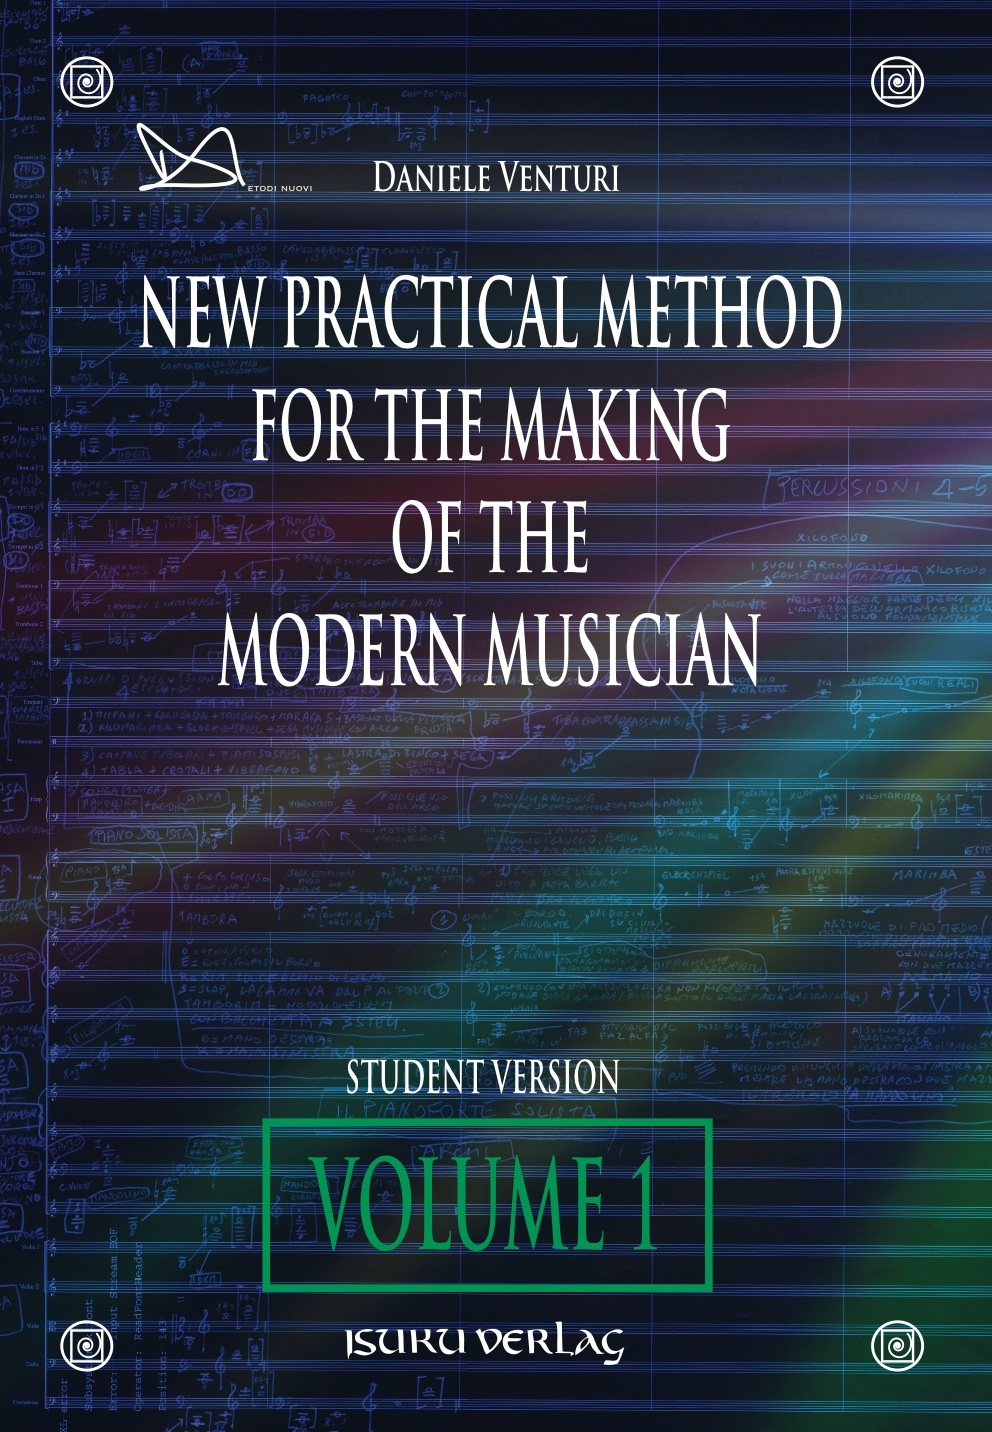 New practical method for the making of the modern musician